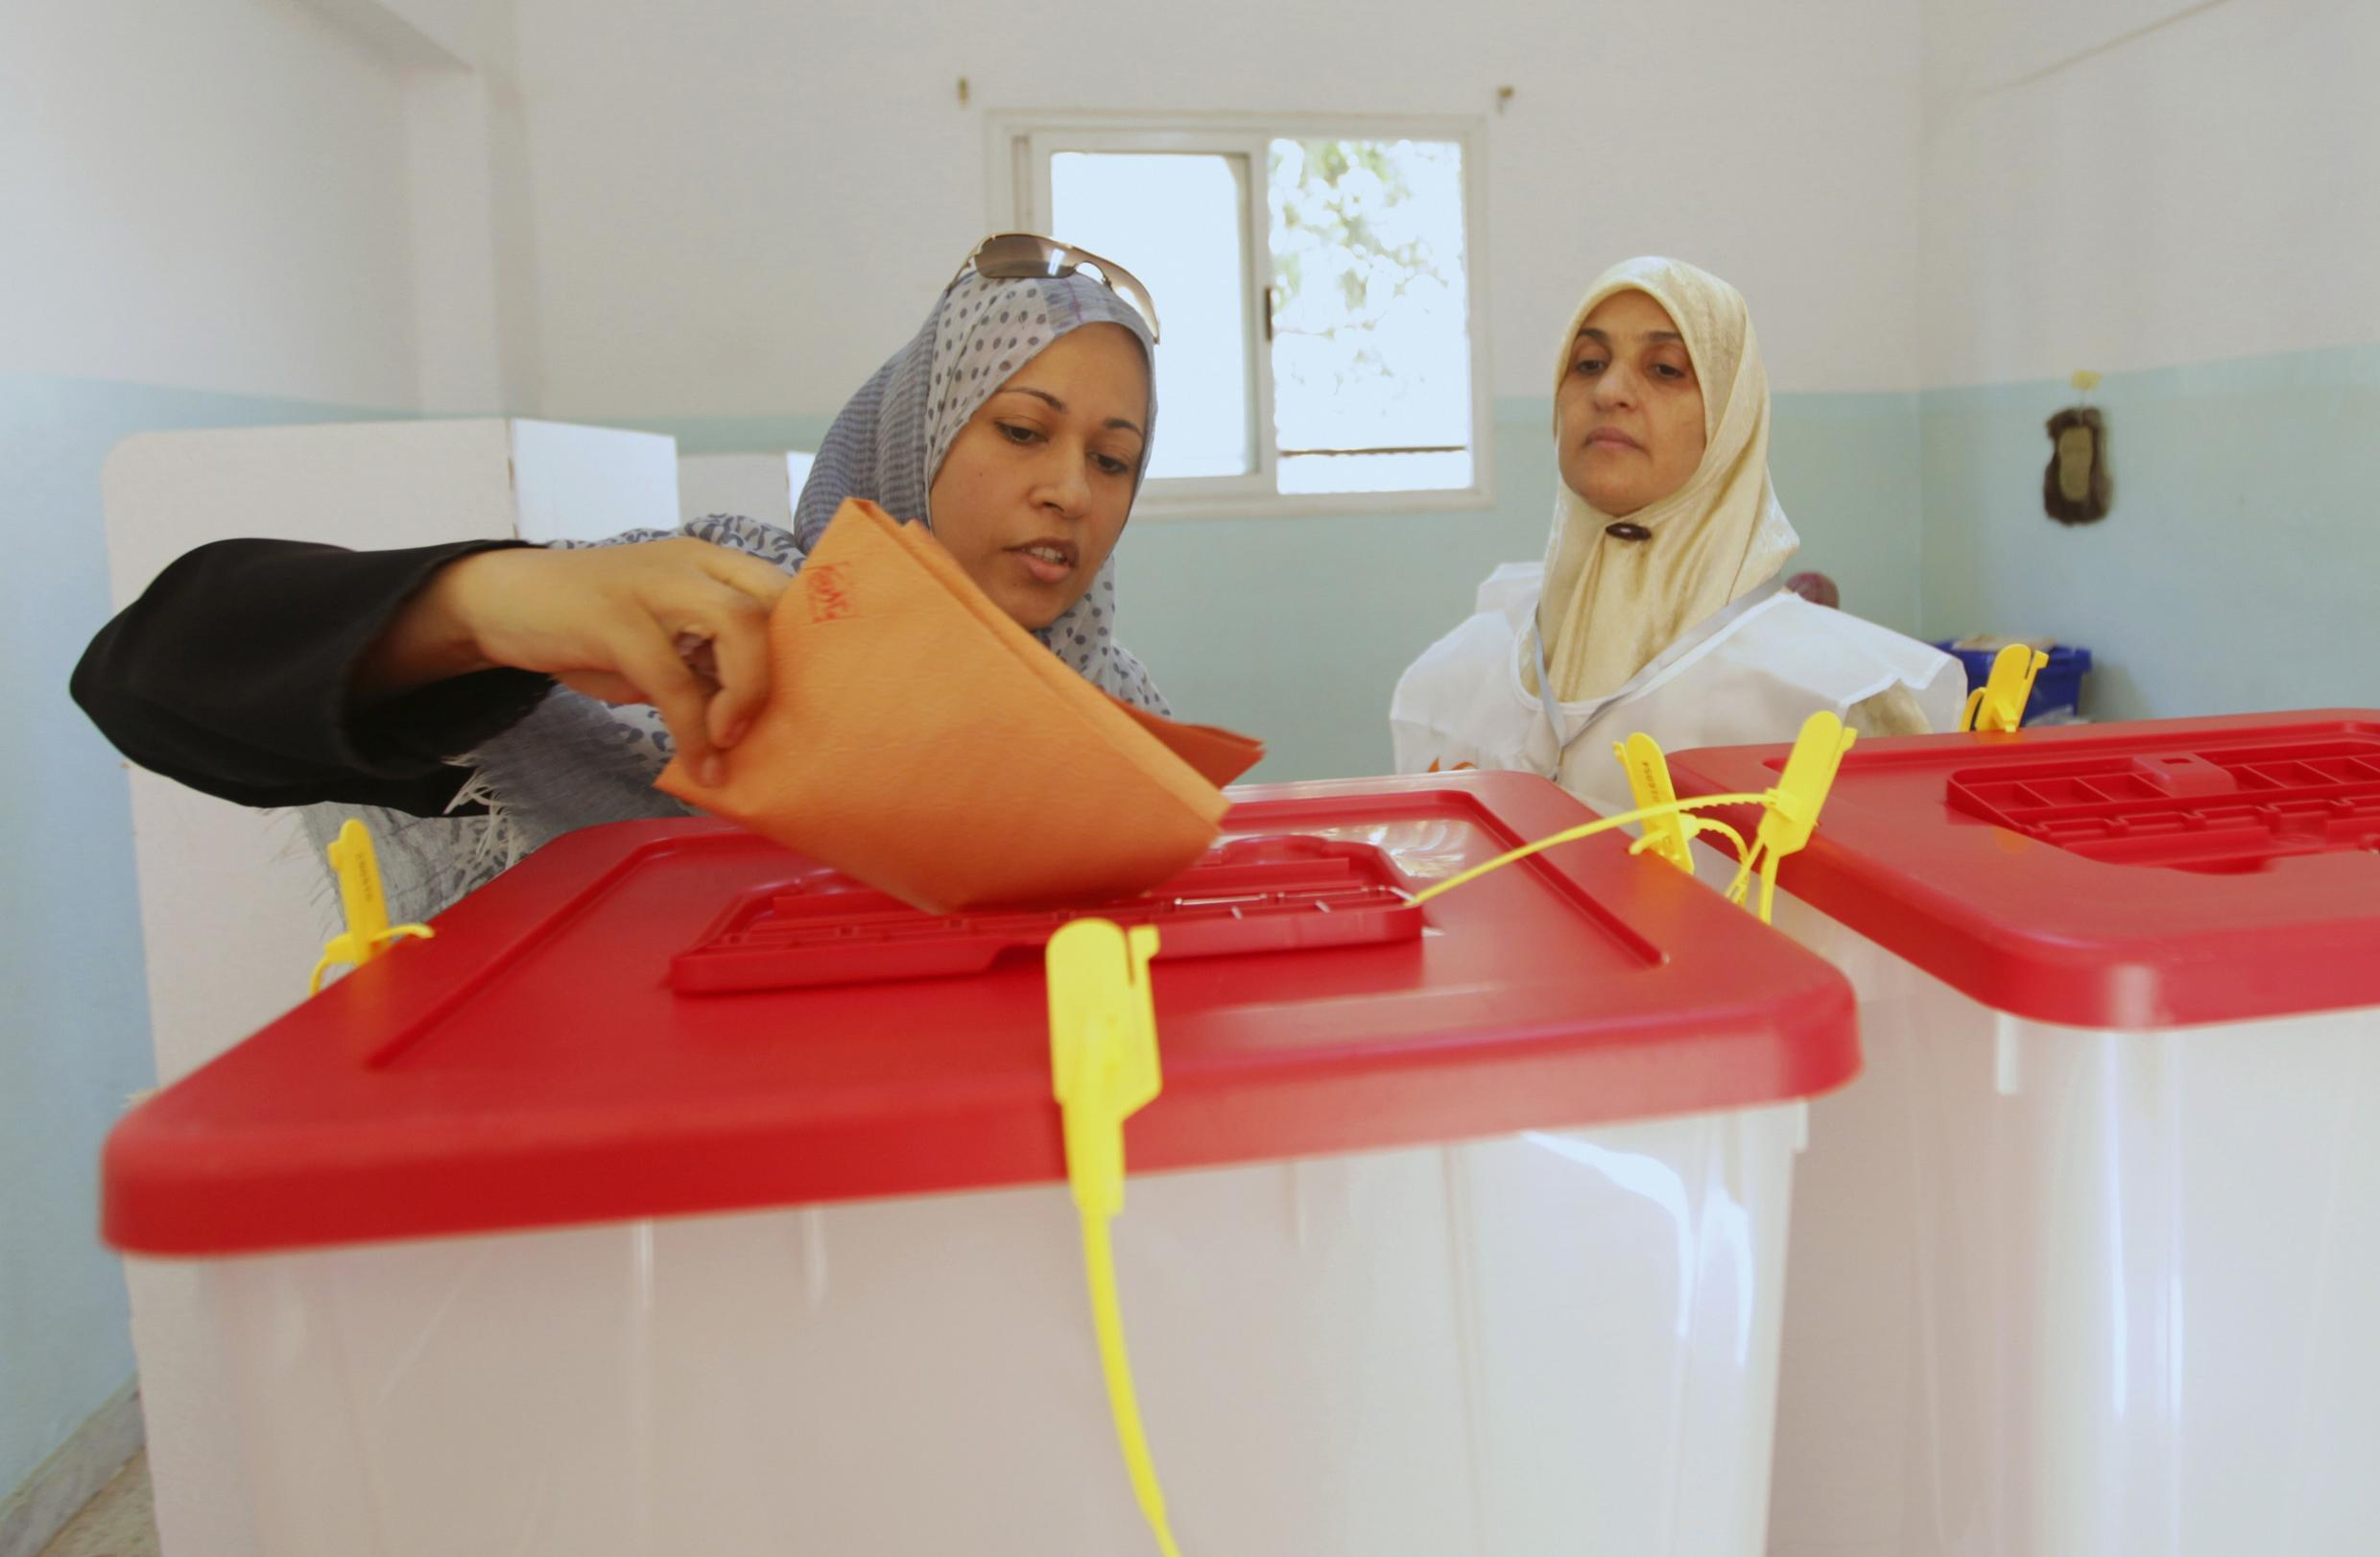 A woman casts her vote at a polling station during the National Assembly election in Benghazi, 7 July, 2012